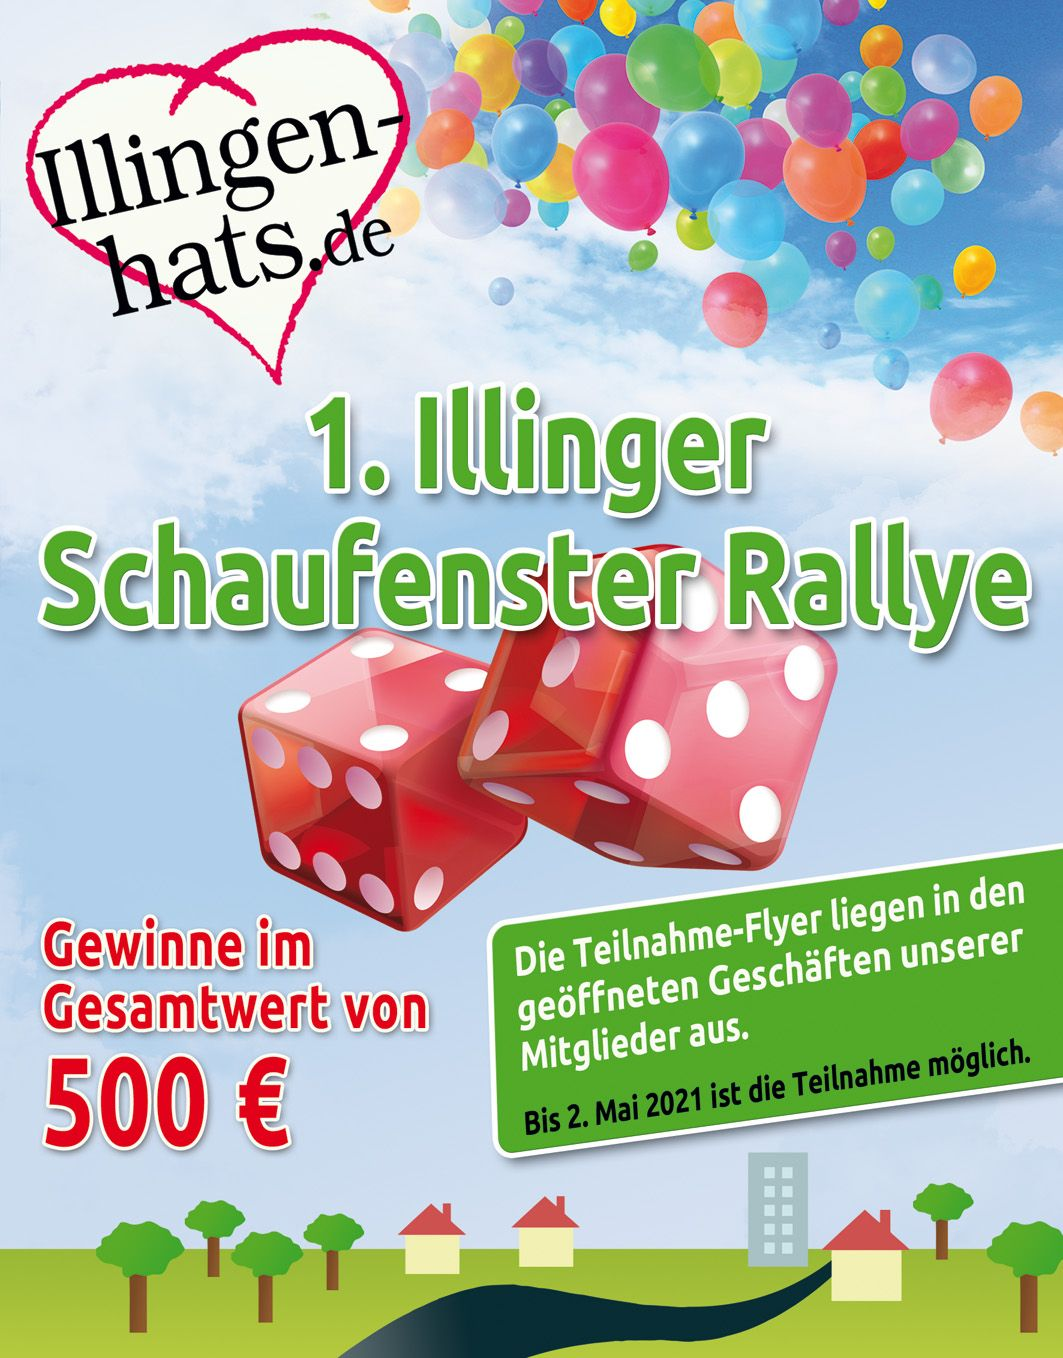 Illingen Schaufenster Rallye